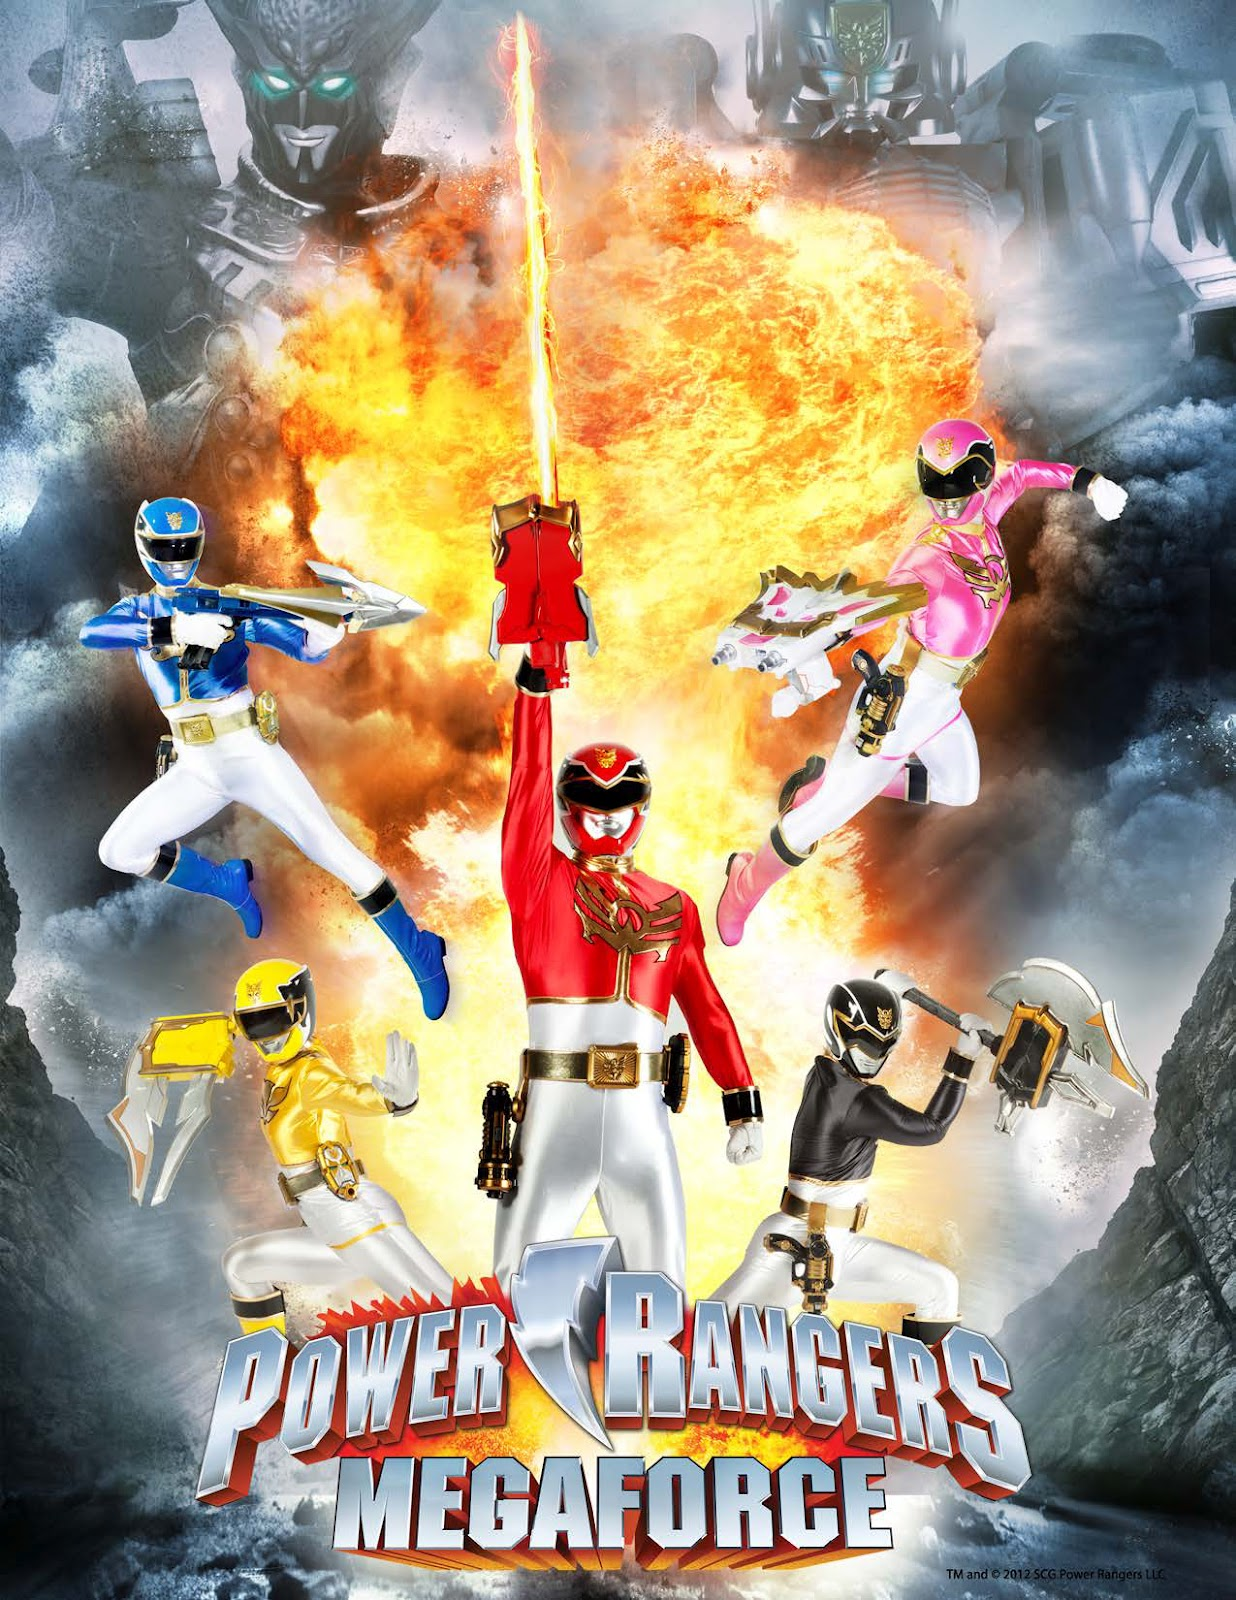 Henshin Grid: Power Rangers Megaforce for 2013-2014 Announced